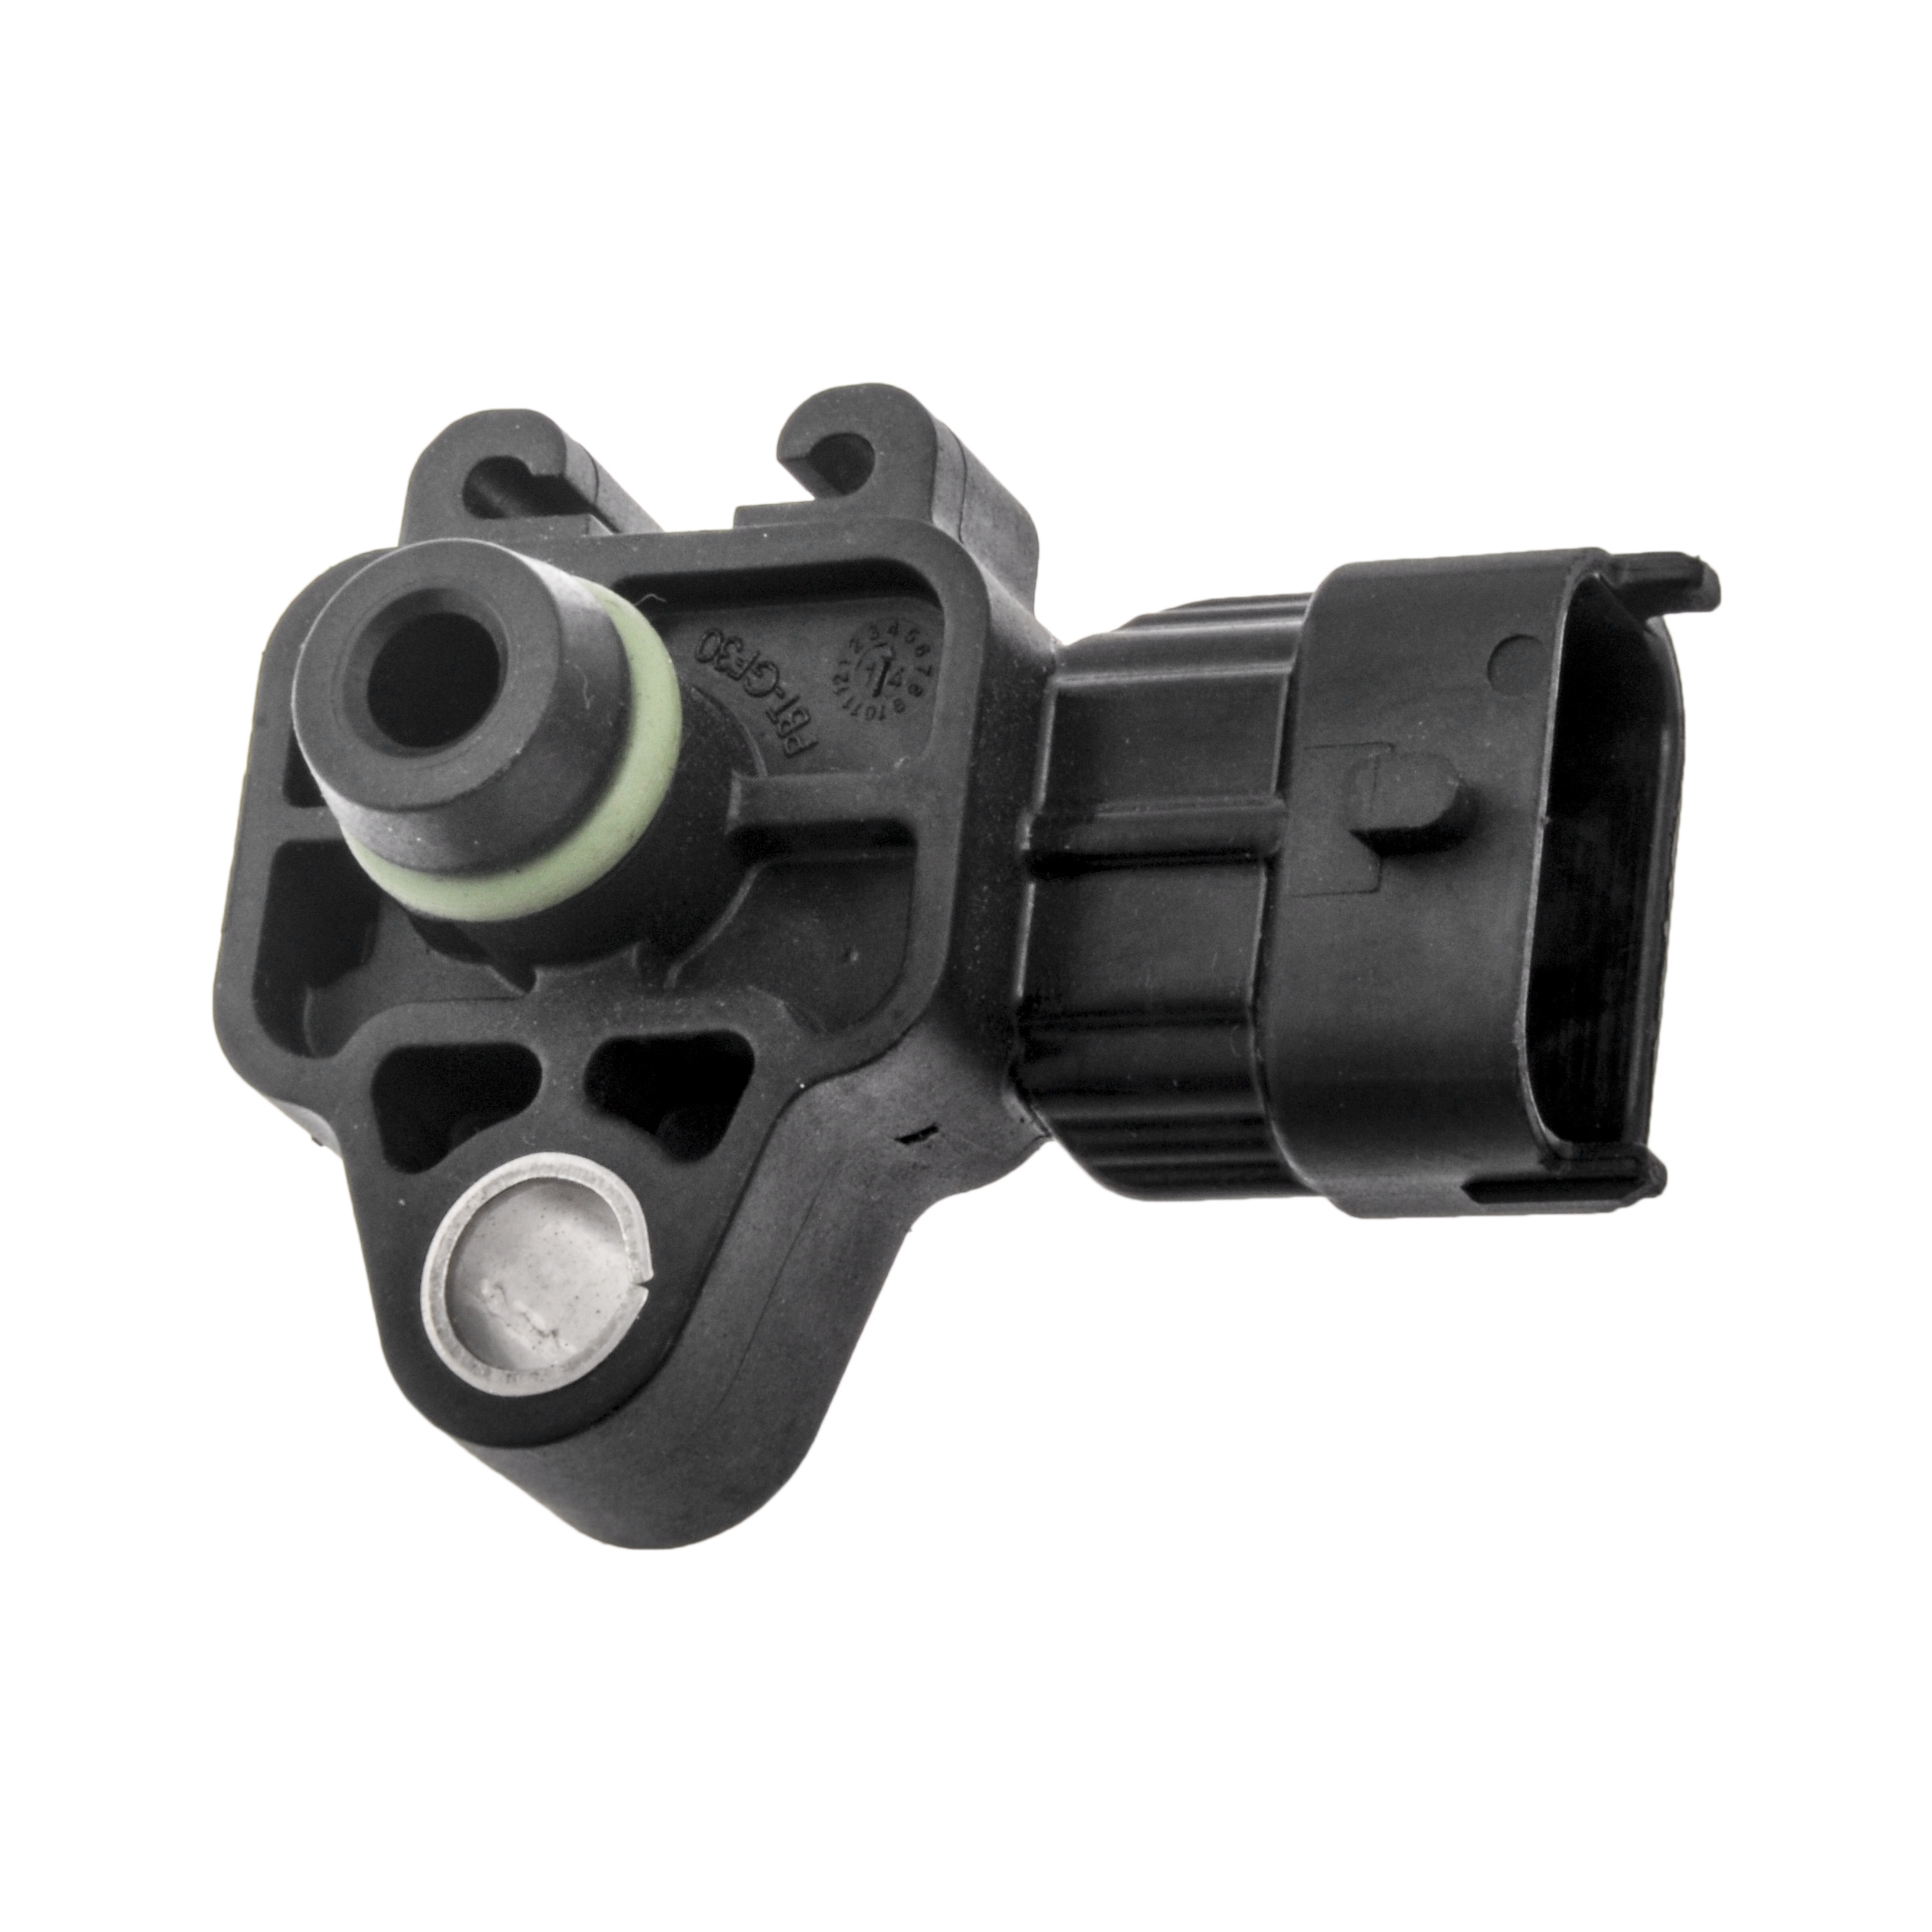 Map Sensor Or Maf Sensor: New Herko Map Sensor MPSH394 For Buick Cadillac Chevrolet